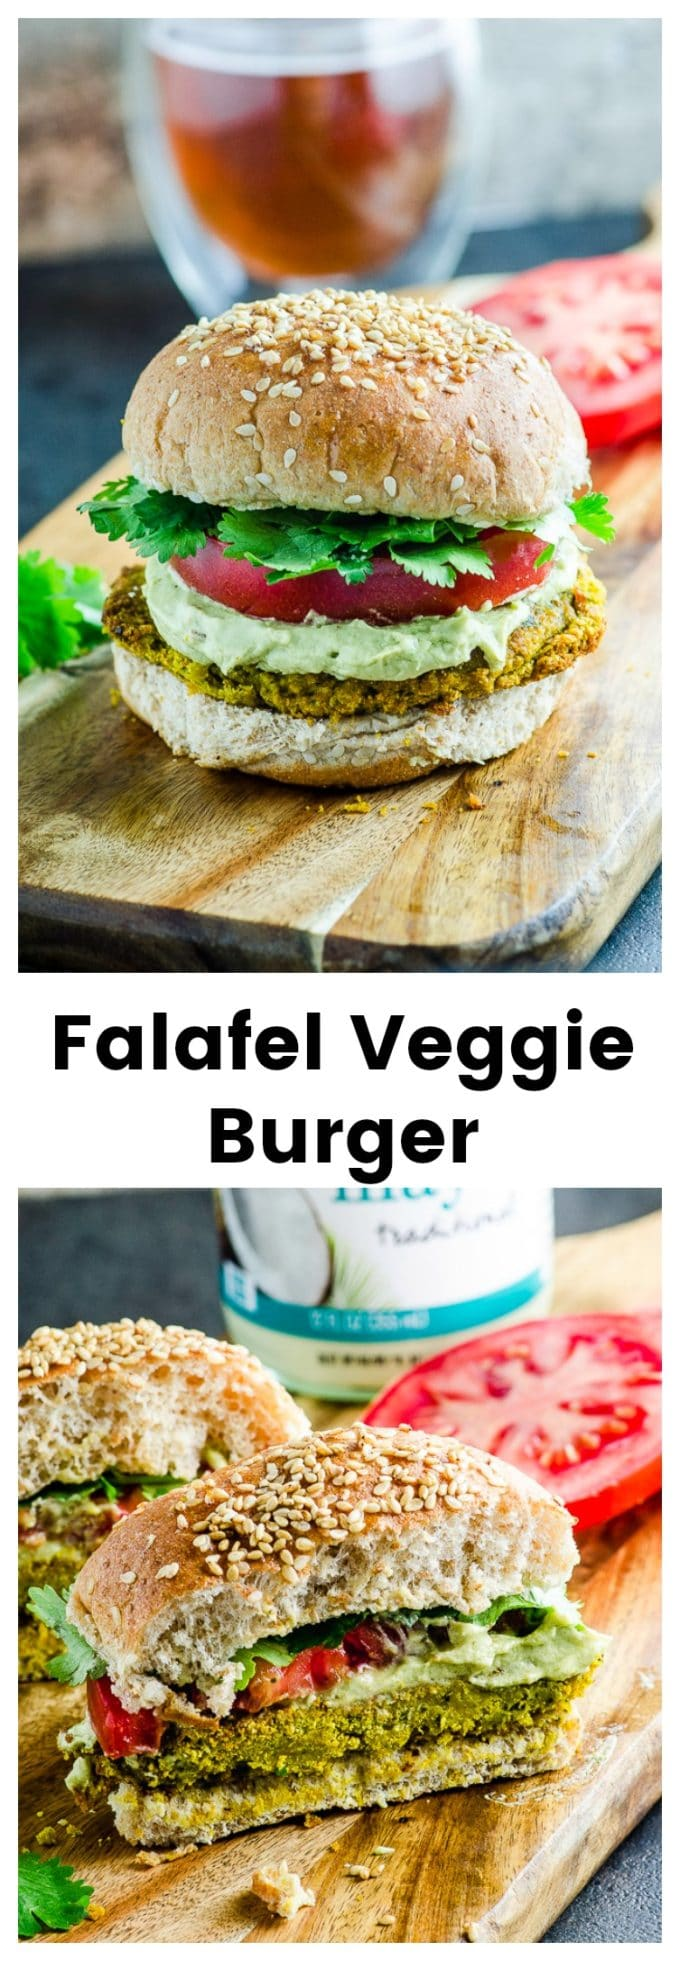 Tired of the same old boring frozen veggie burgers? Give this Falafel Veggie Burger With Avocado Tahini Cream a try! Easy to prepare and loaded with spices... and flavor! @chosenFoods